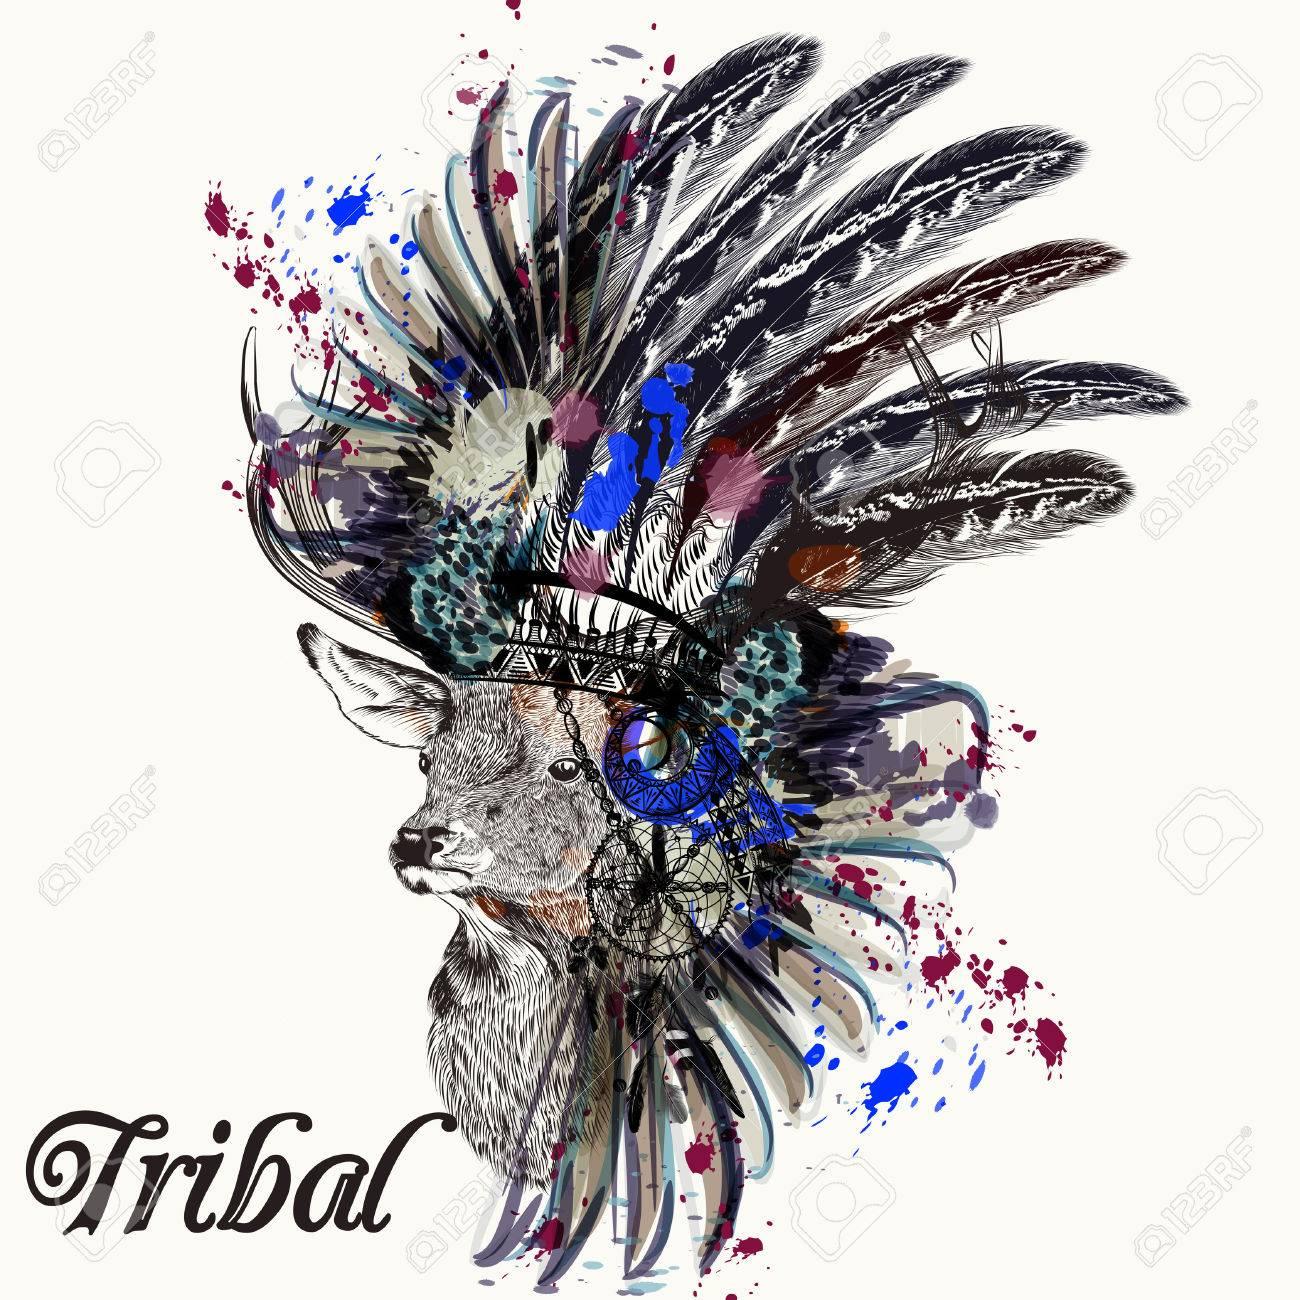 Ethnic Fashion Illustration With Indian Head Dress Deer And Ink Royalty Free Cliparts Vectors And Stock Illustration Image 63250016